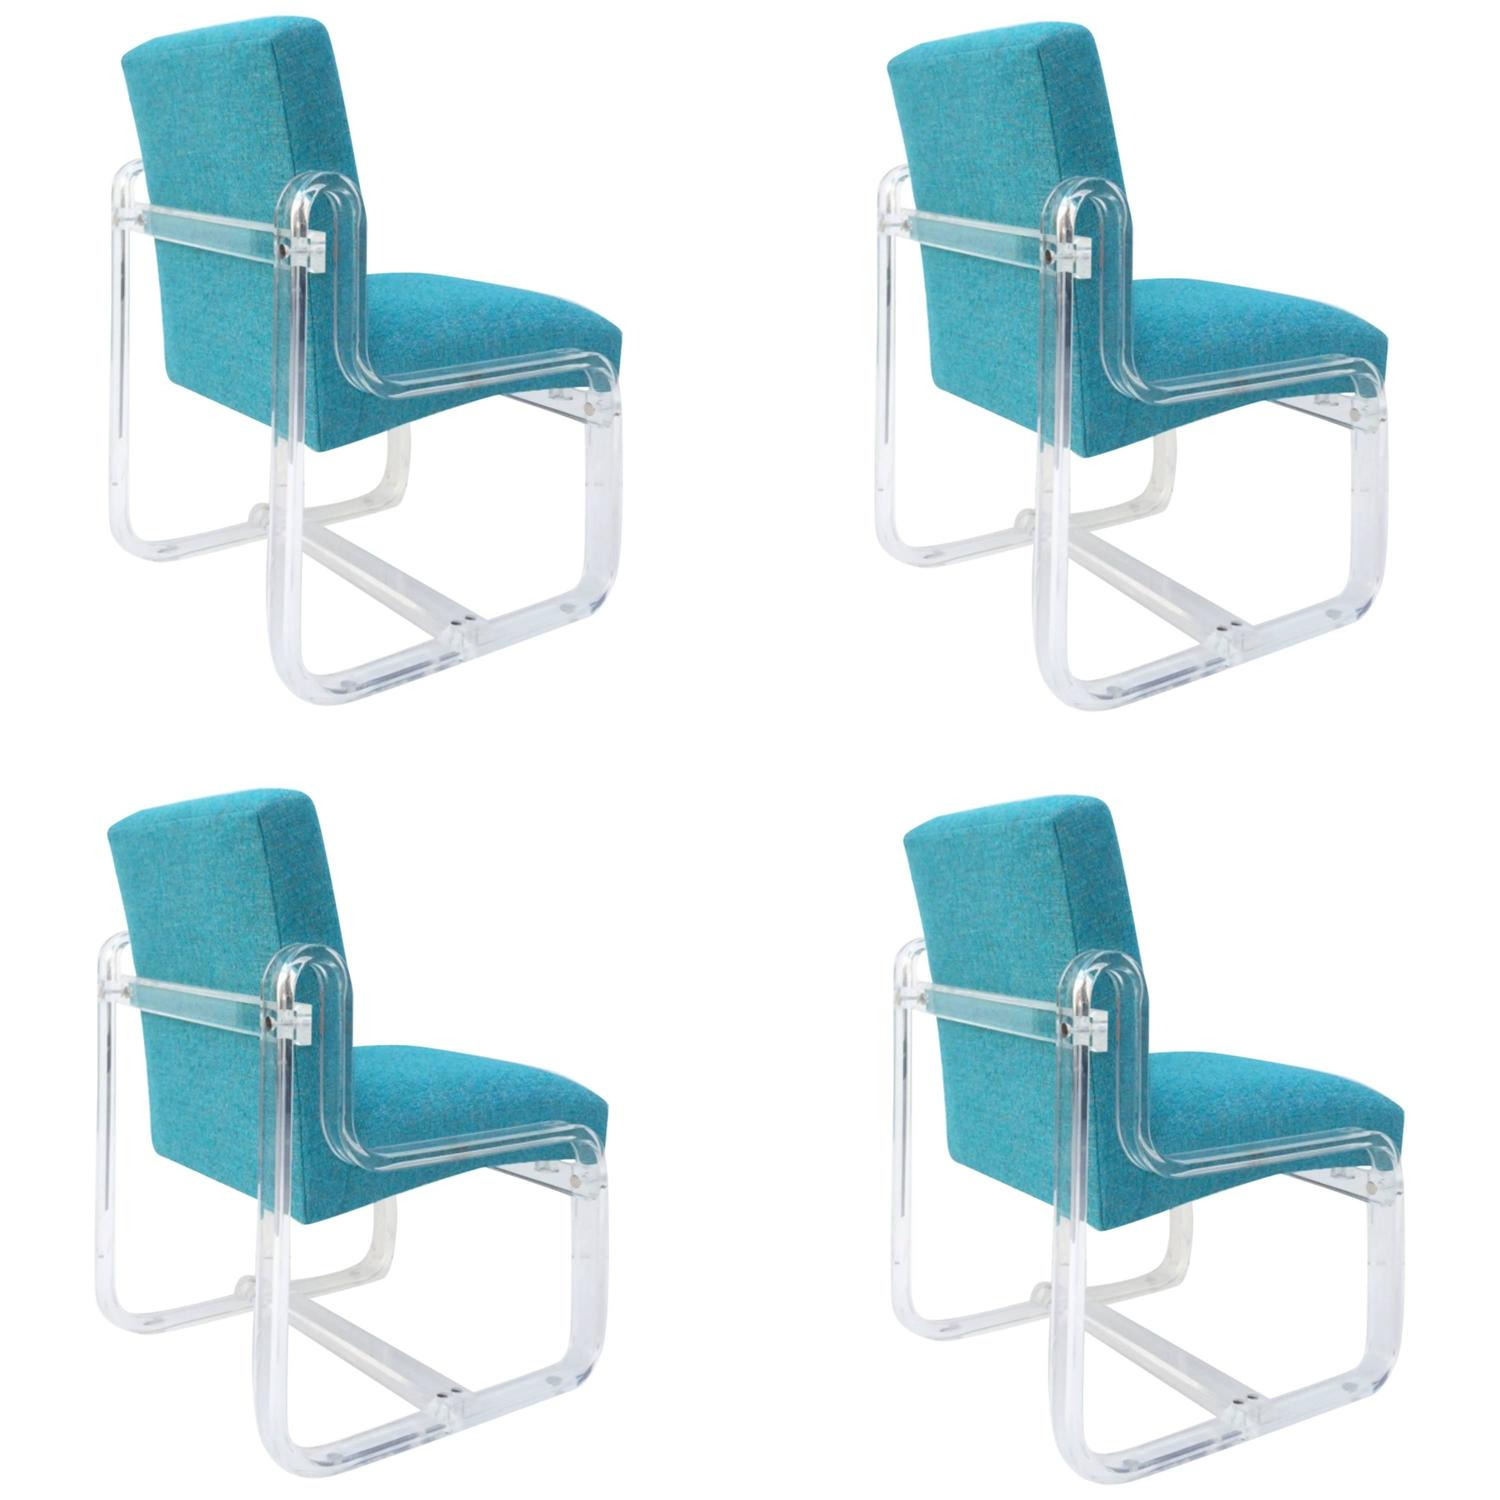 Set of Four Acrylic Dining Chairs by Vivid For Sale at 1stdibs